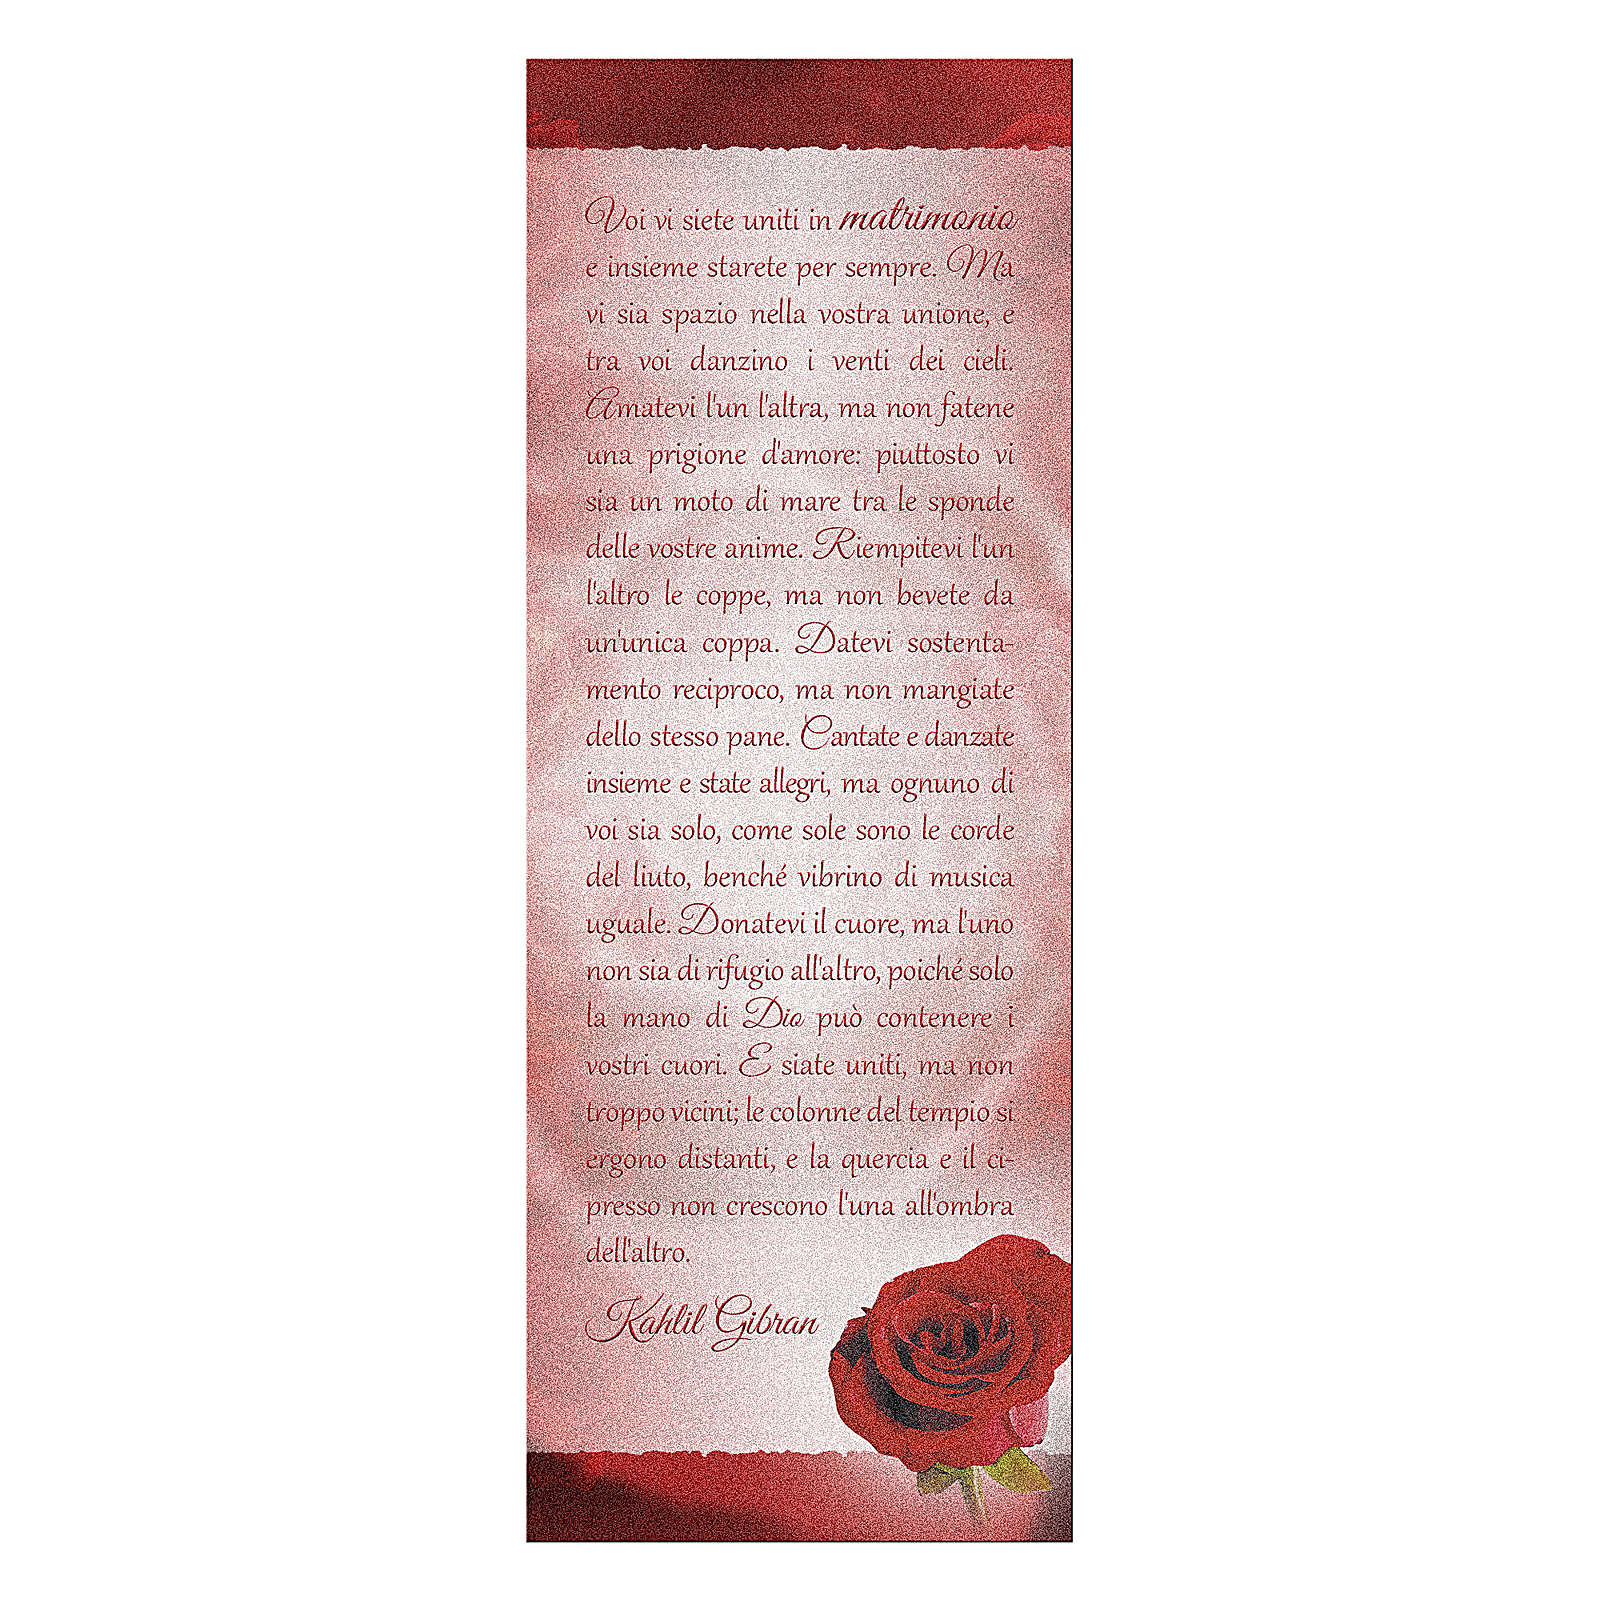 Bookmark in pearl cardboard with red rose image and K. Gibran sentence 15x5 cm 4